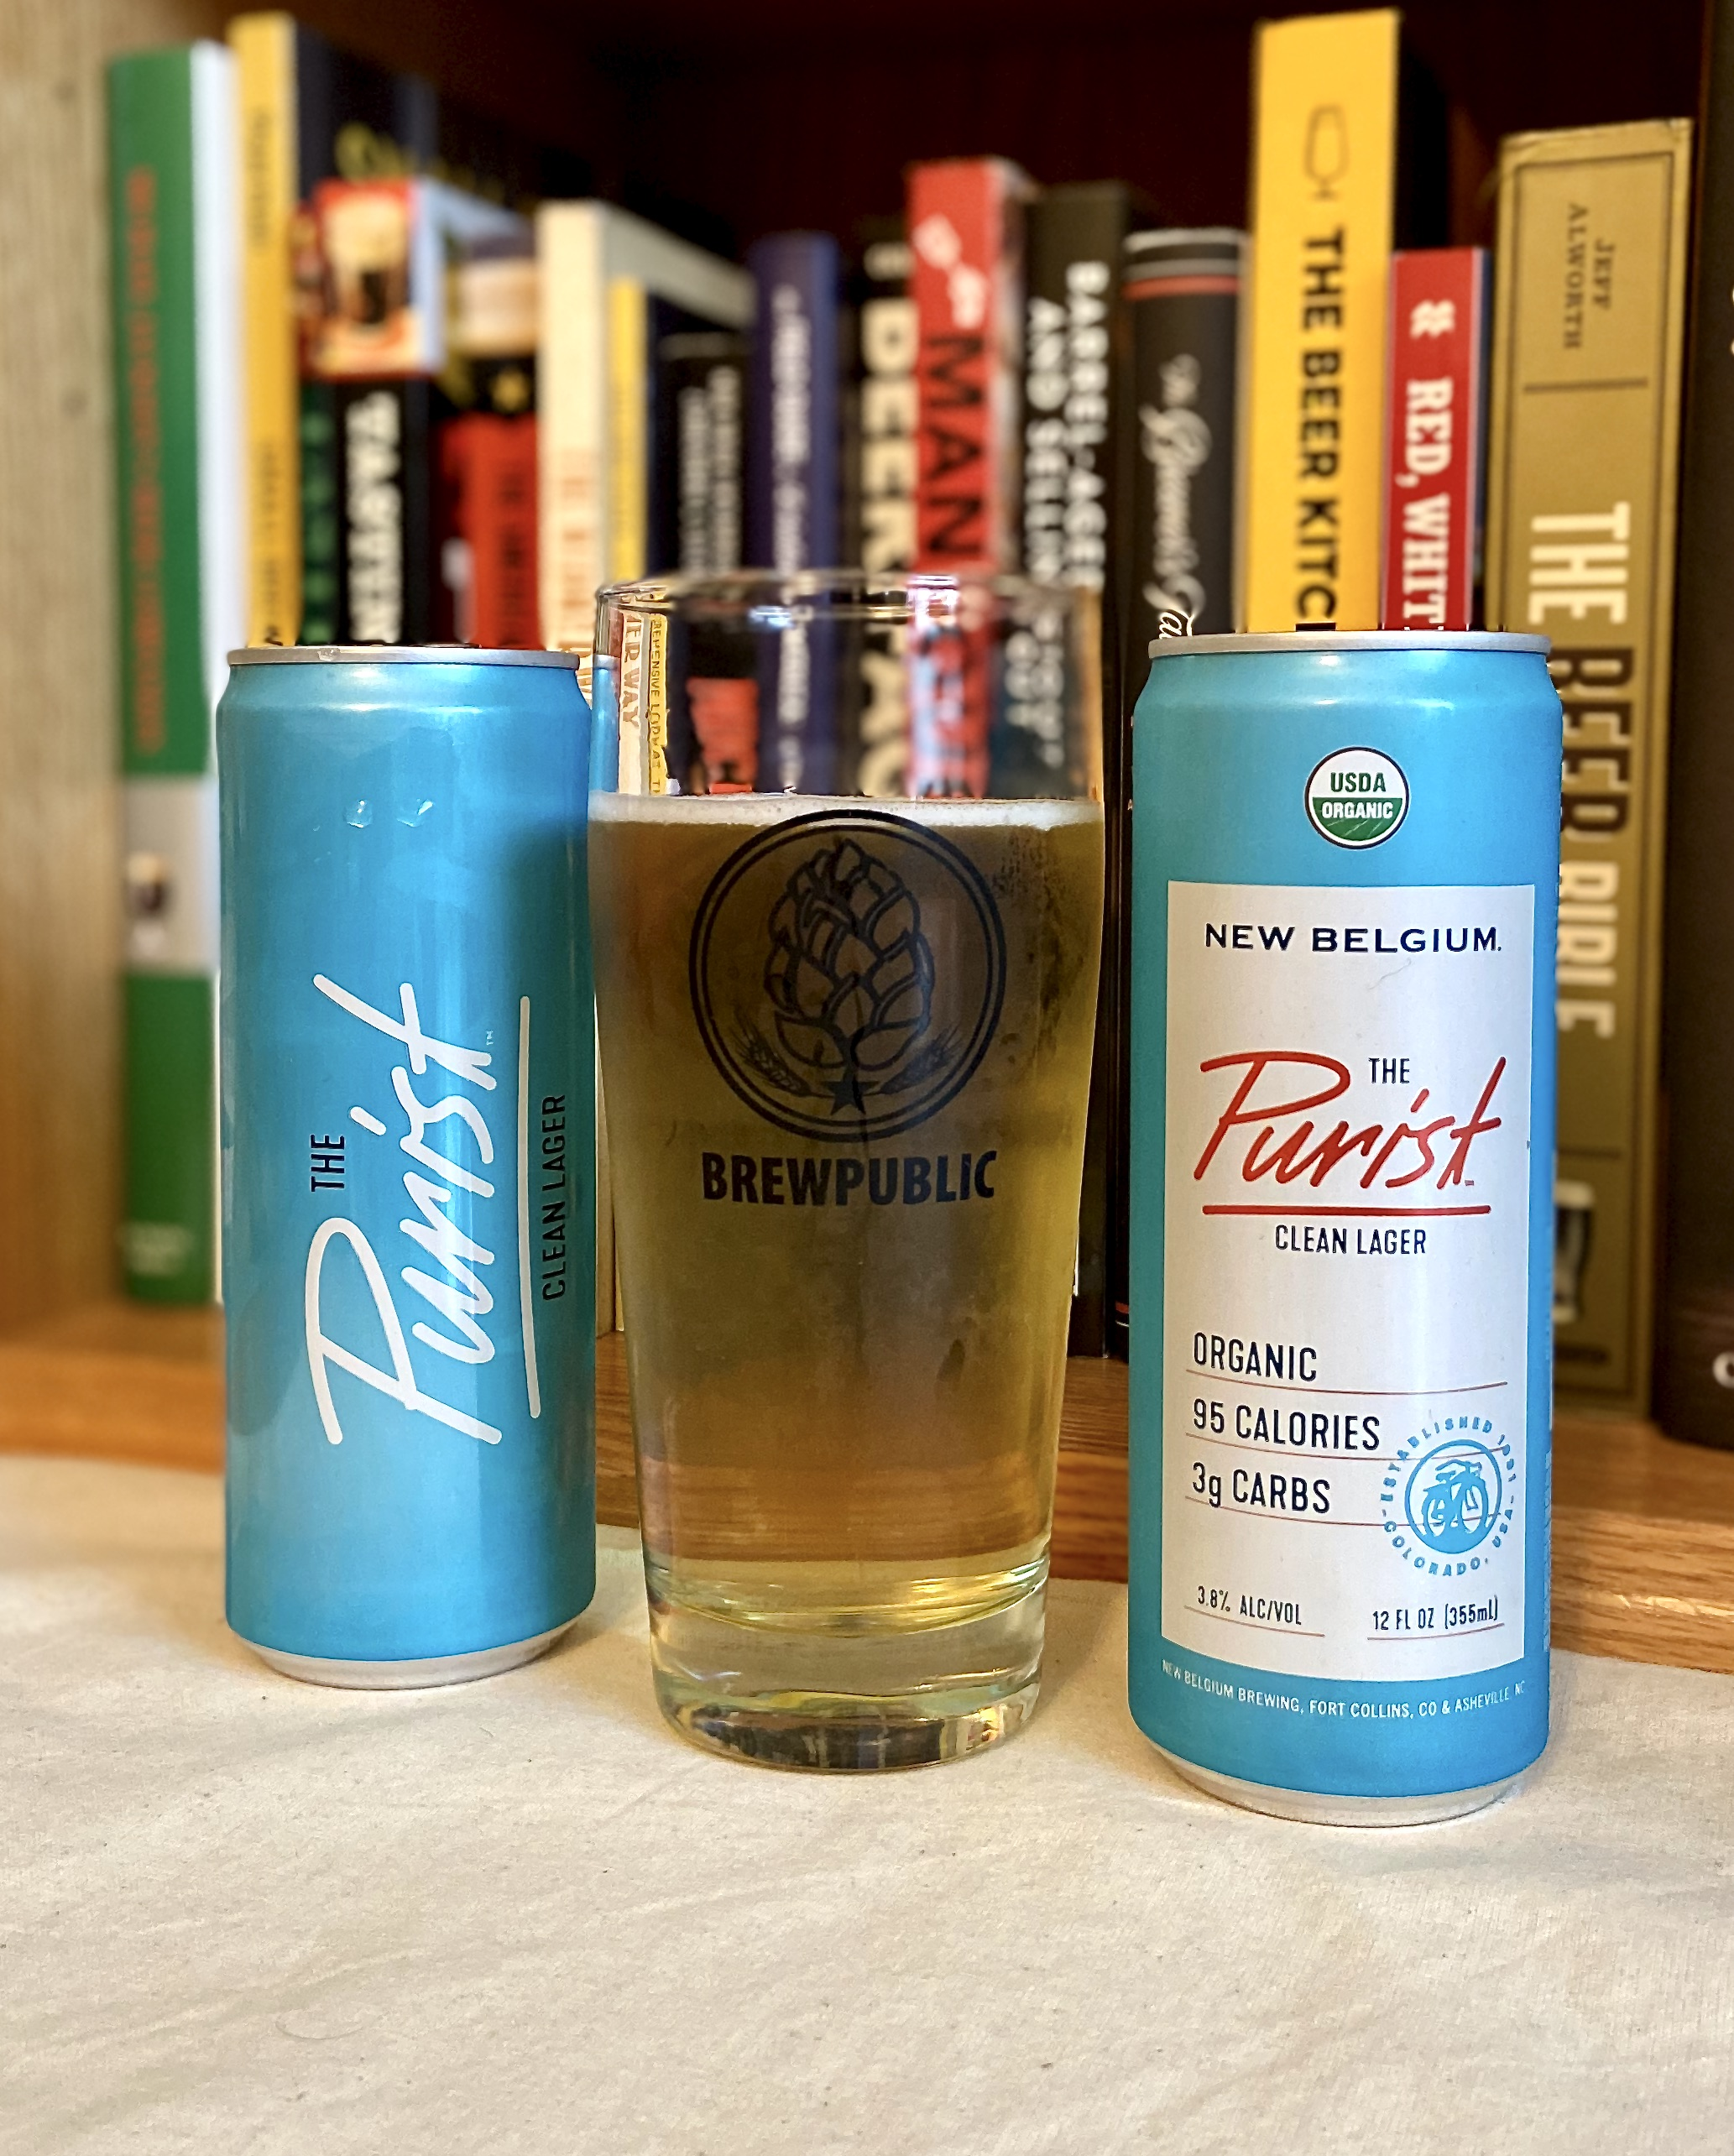 New Belgium Brewing has released The Purist Clean Lager at only 3.8% ABV, 95 calories and 3g of carbs.